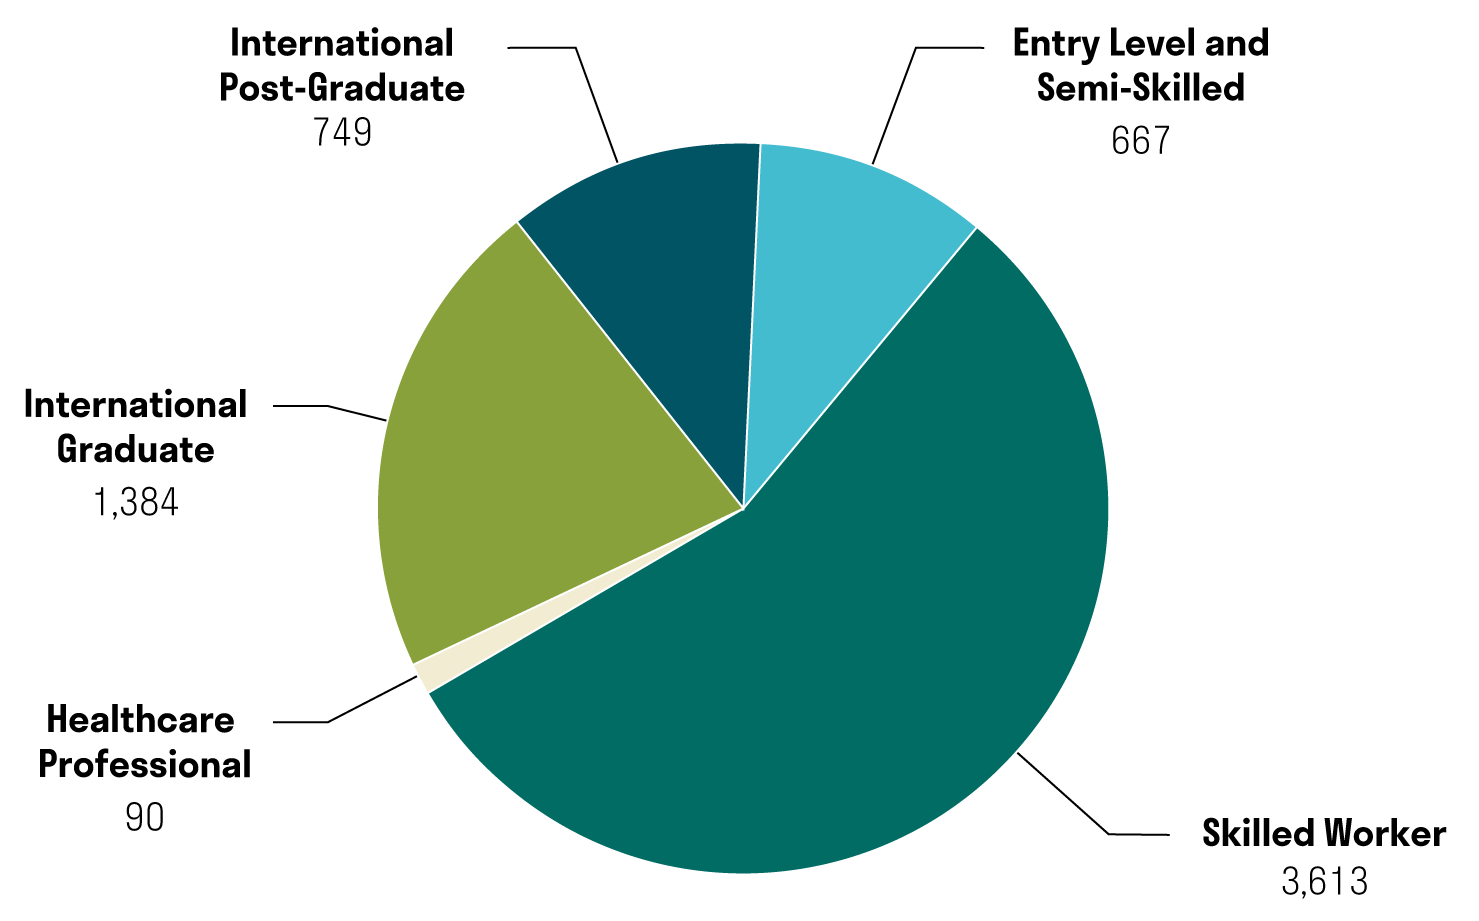 B.C. provincial nominees by category: Healthcare Professional (90), International Graduate (1384), International Post-Graduate (749), Entry Level and Semi-Skilled (667), and Skilled Worker (3613)